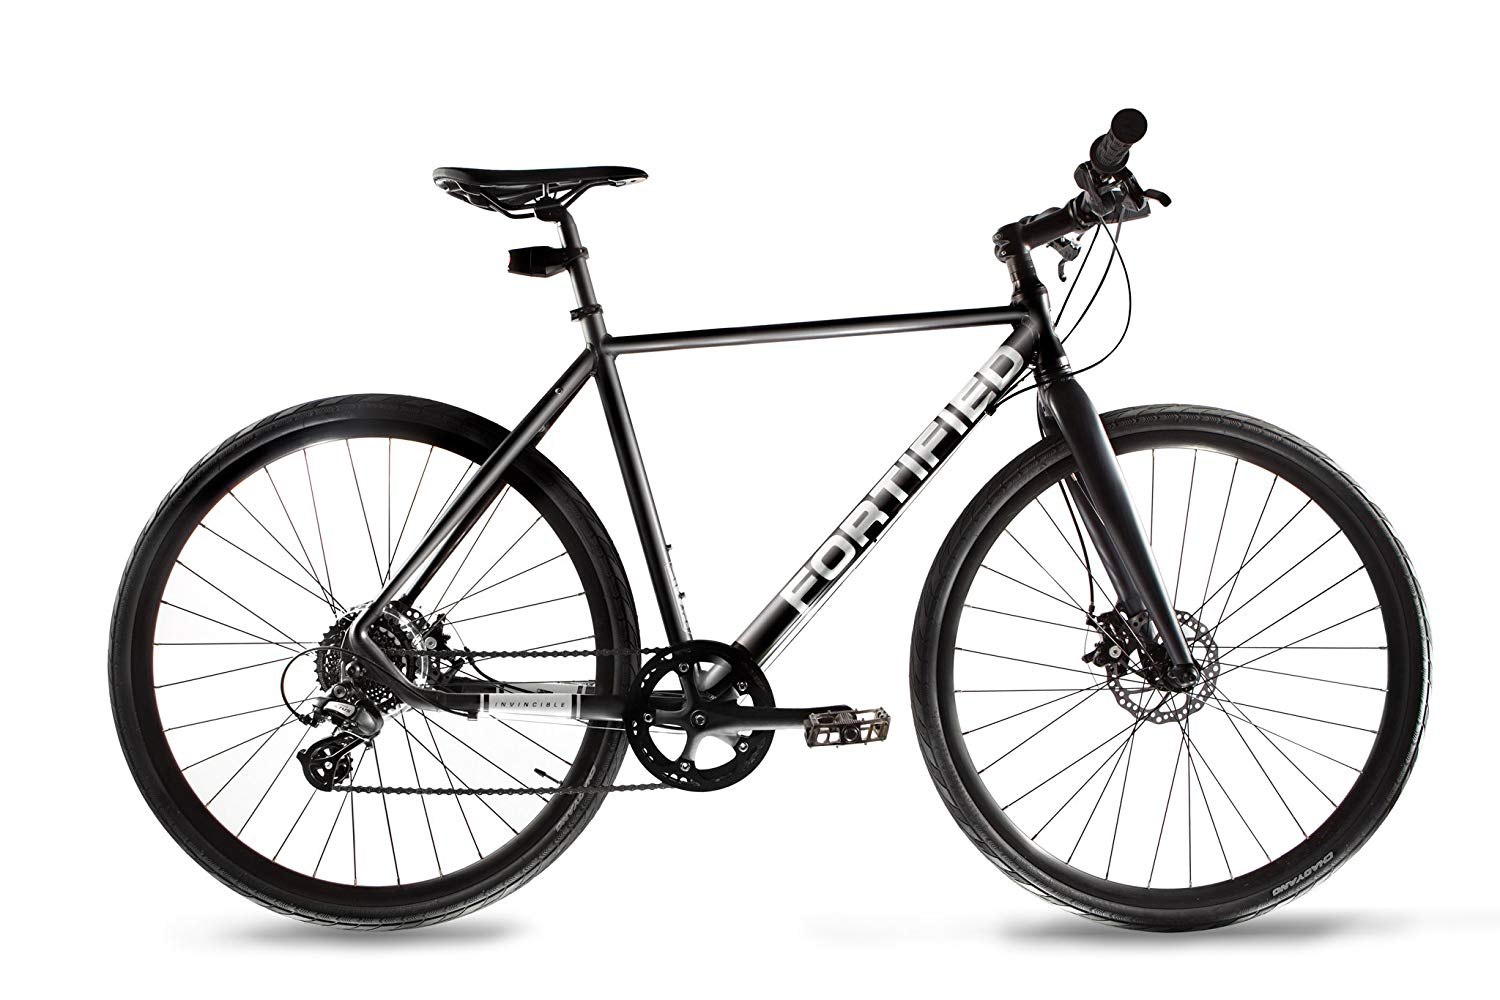 Fortified Theft-Resistant Disc-Brake City Commuter Bike, 8-Speed